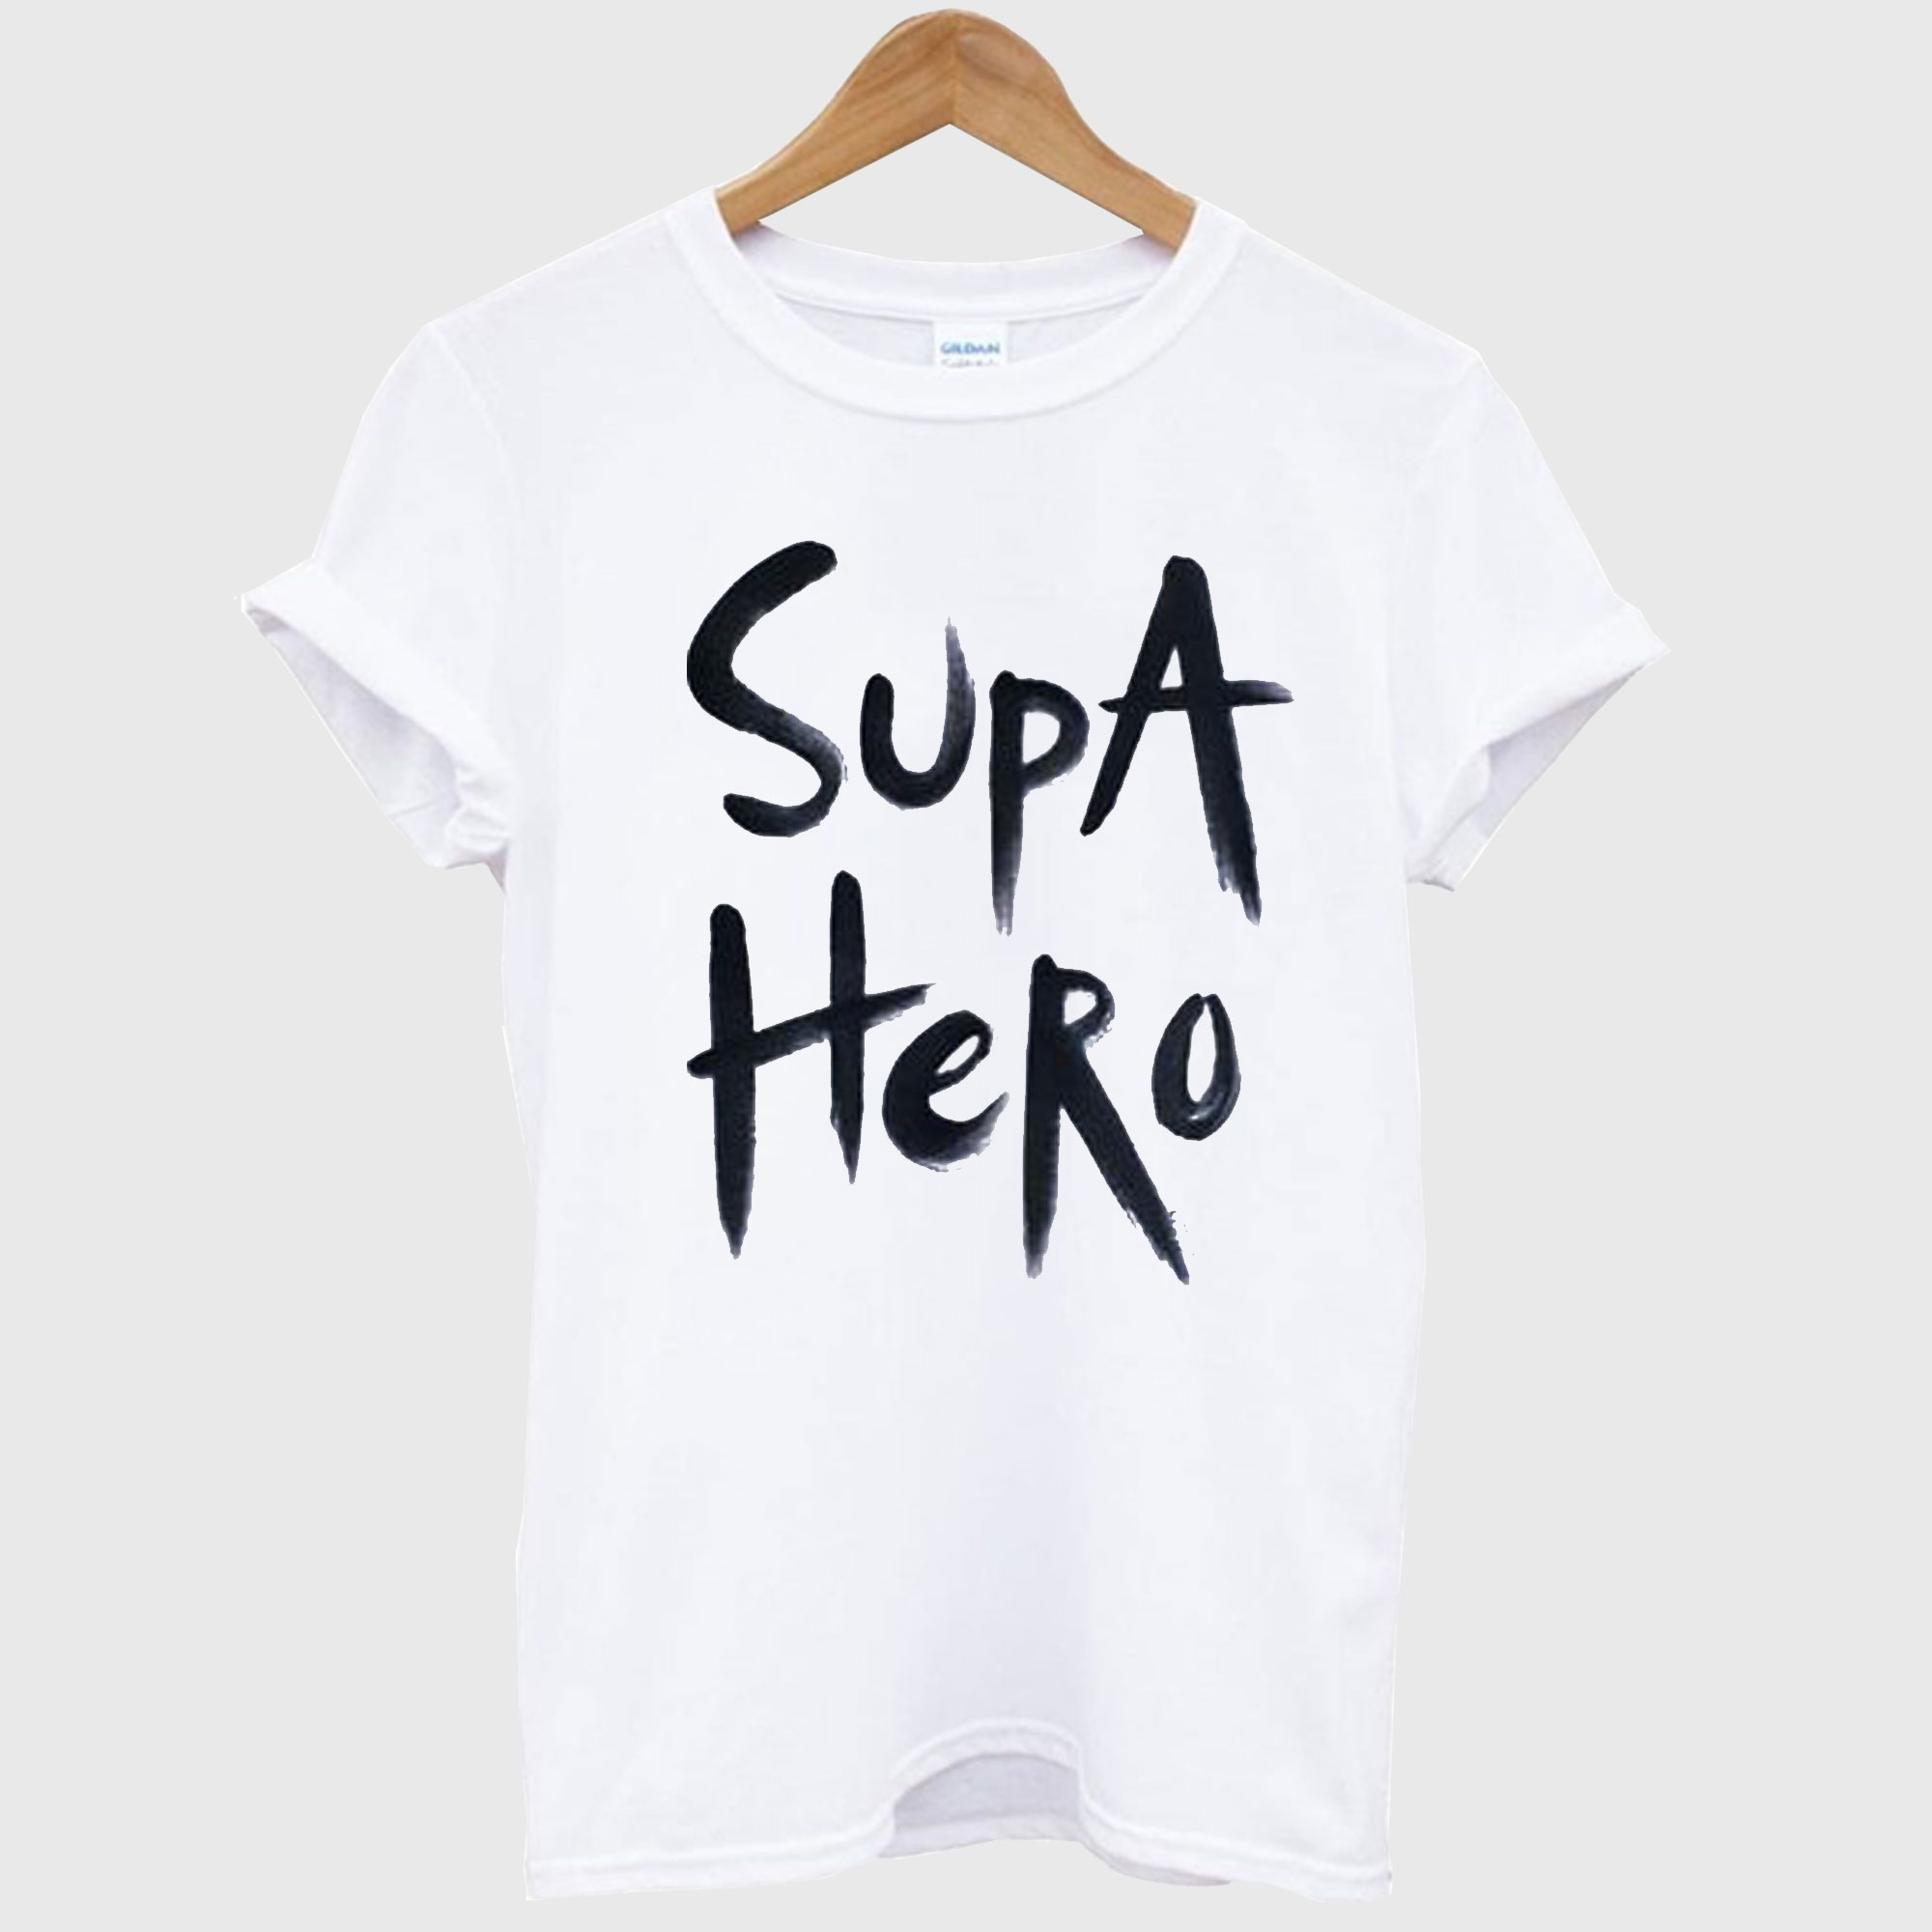 'Supa Hero' Hand Painted T Shirt